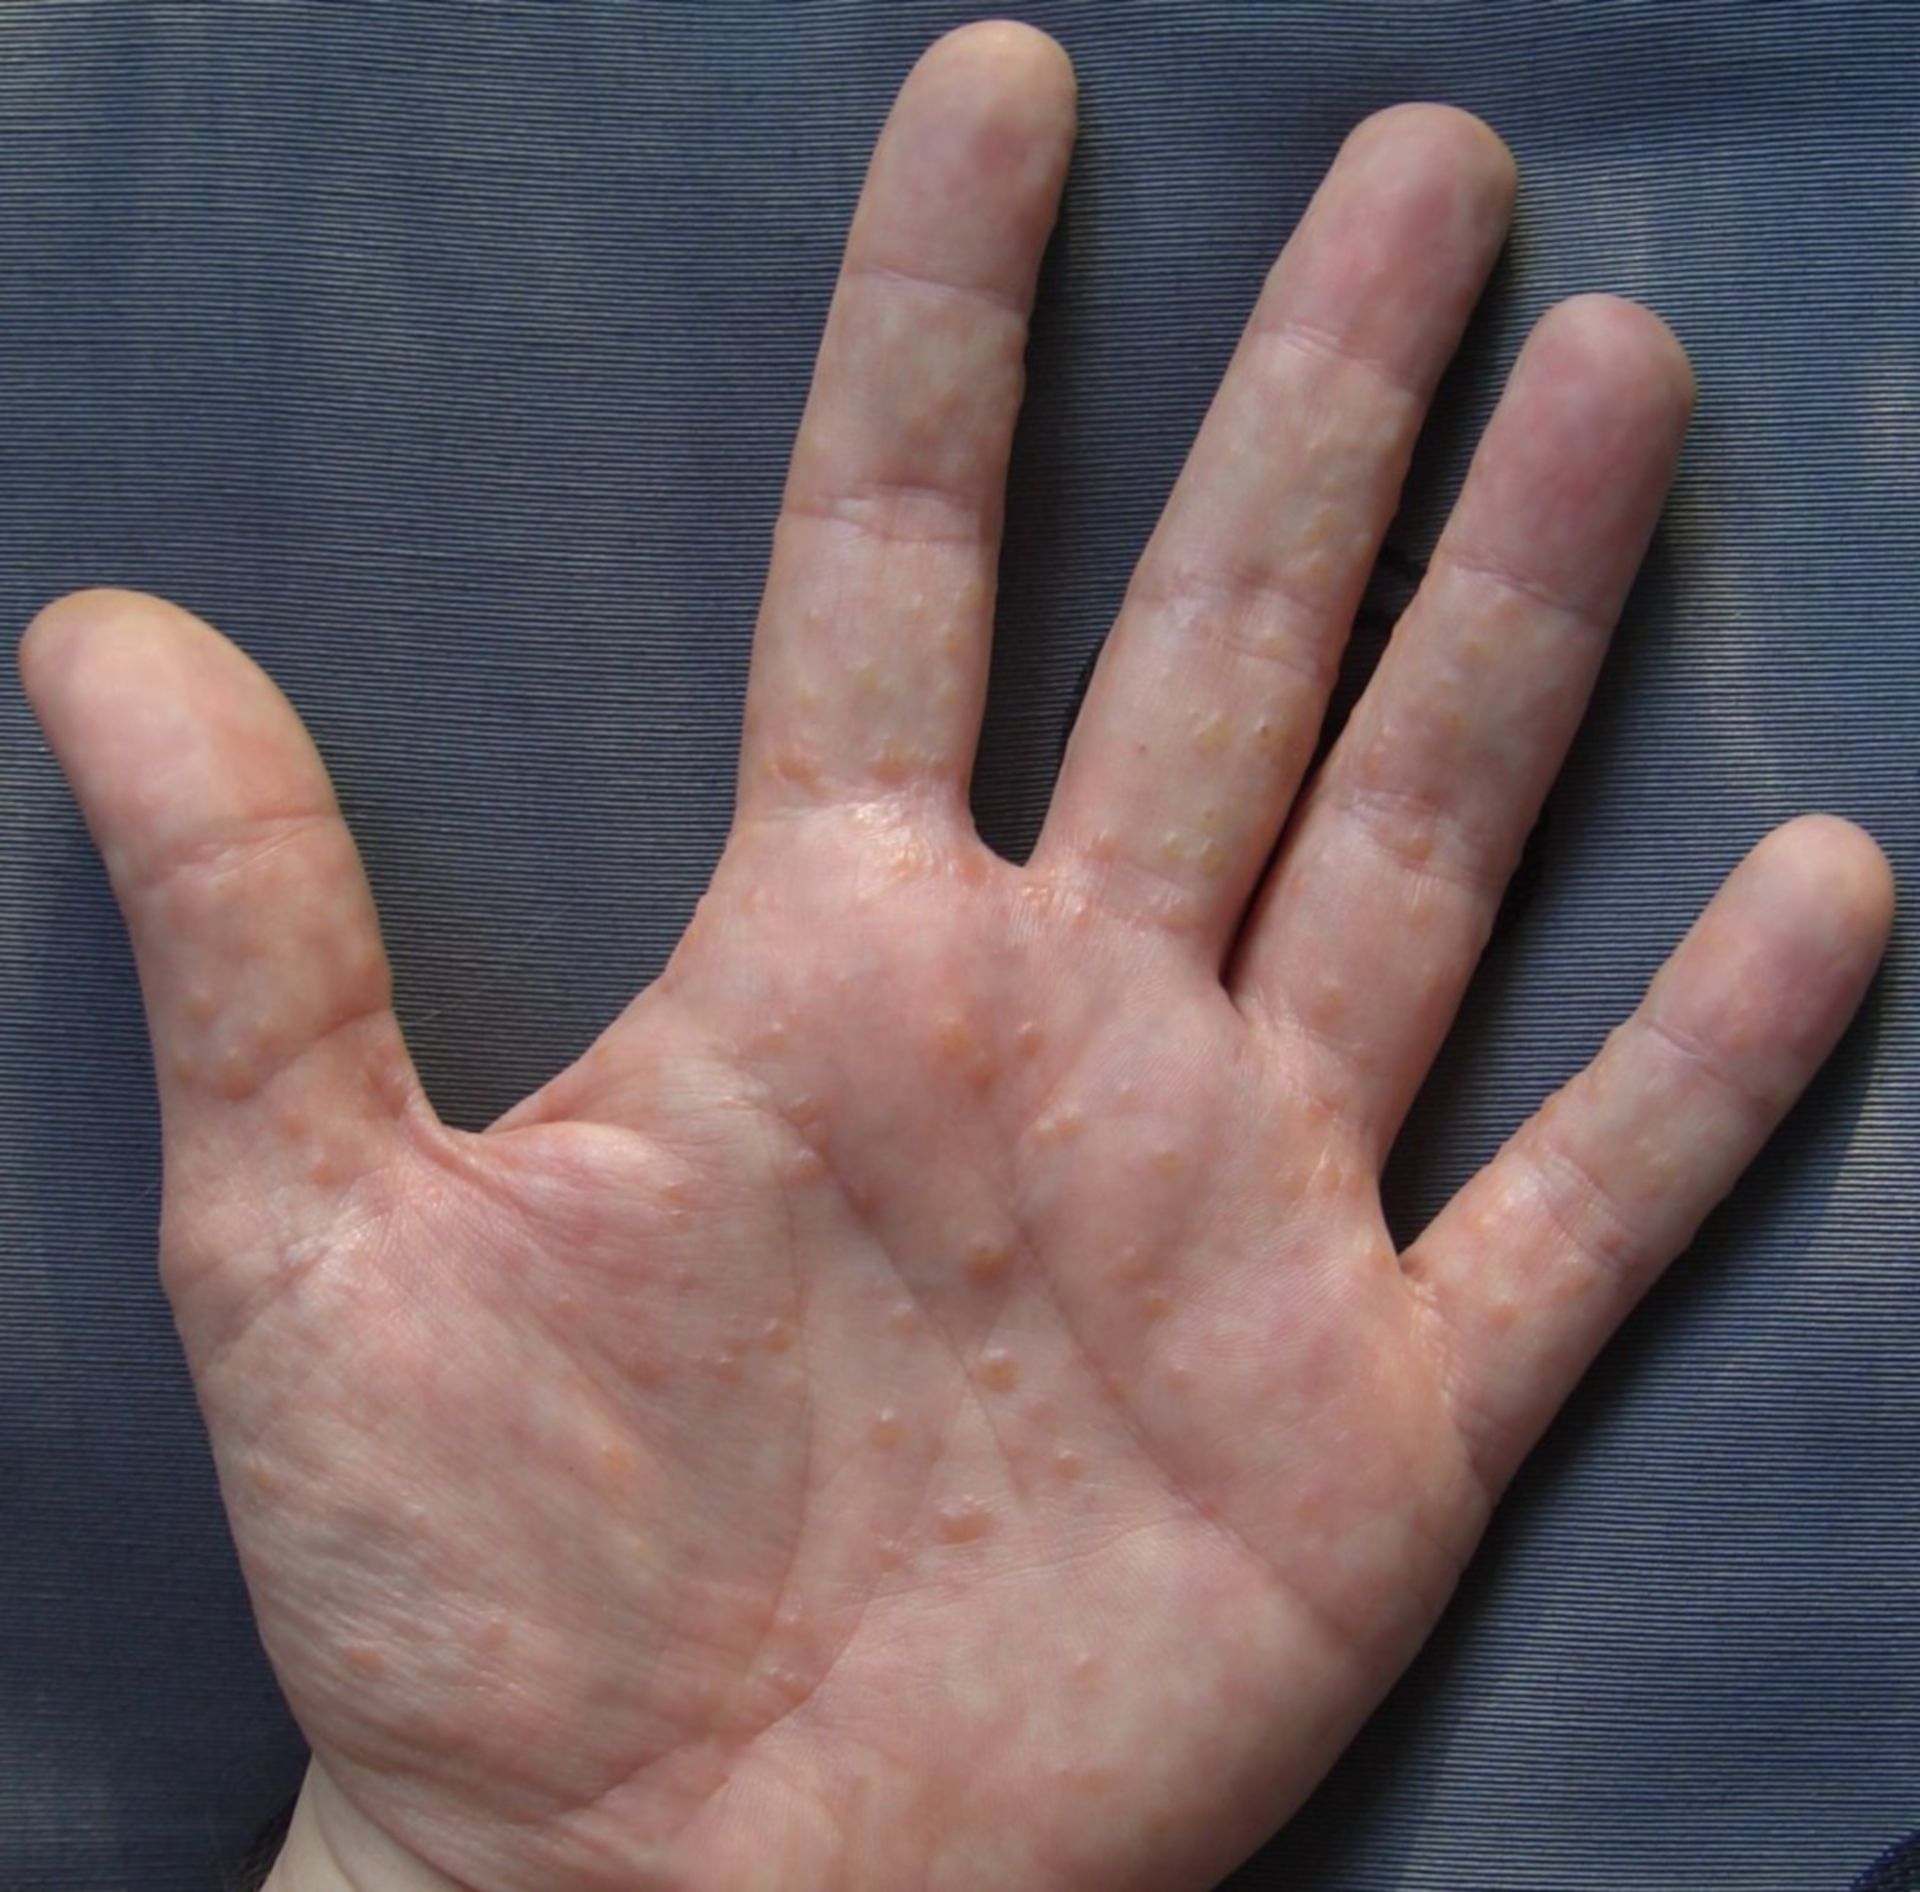 Dyshidrosis of the hand